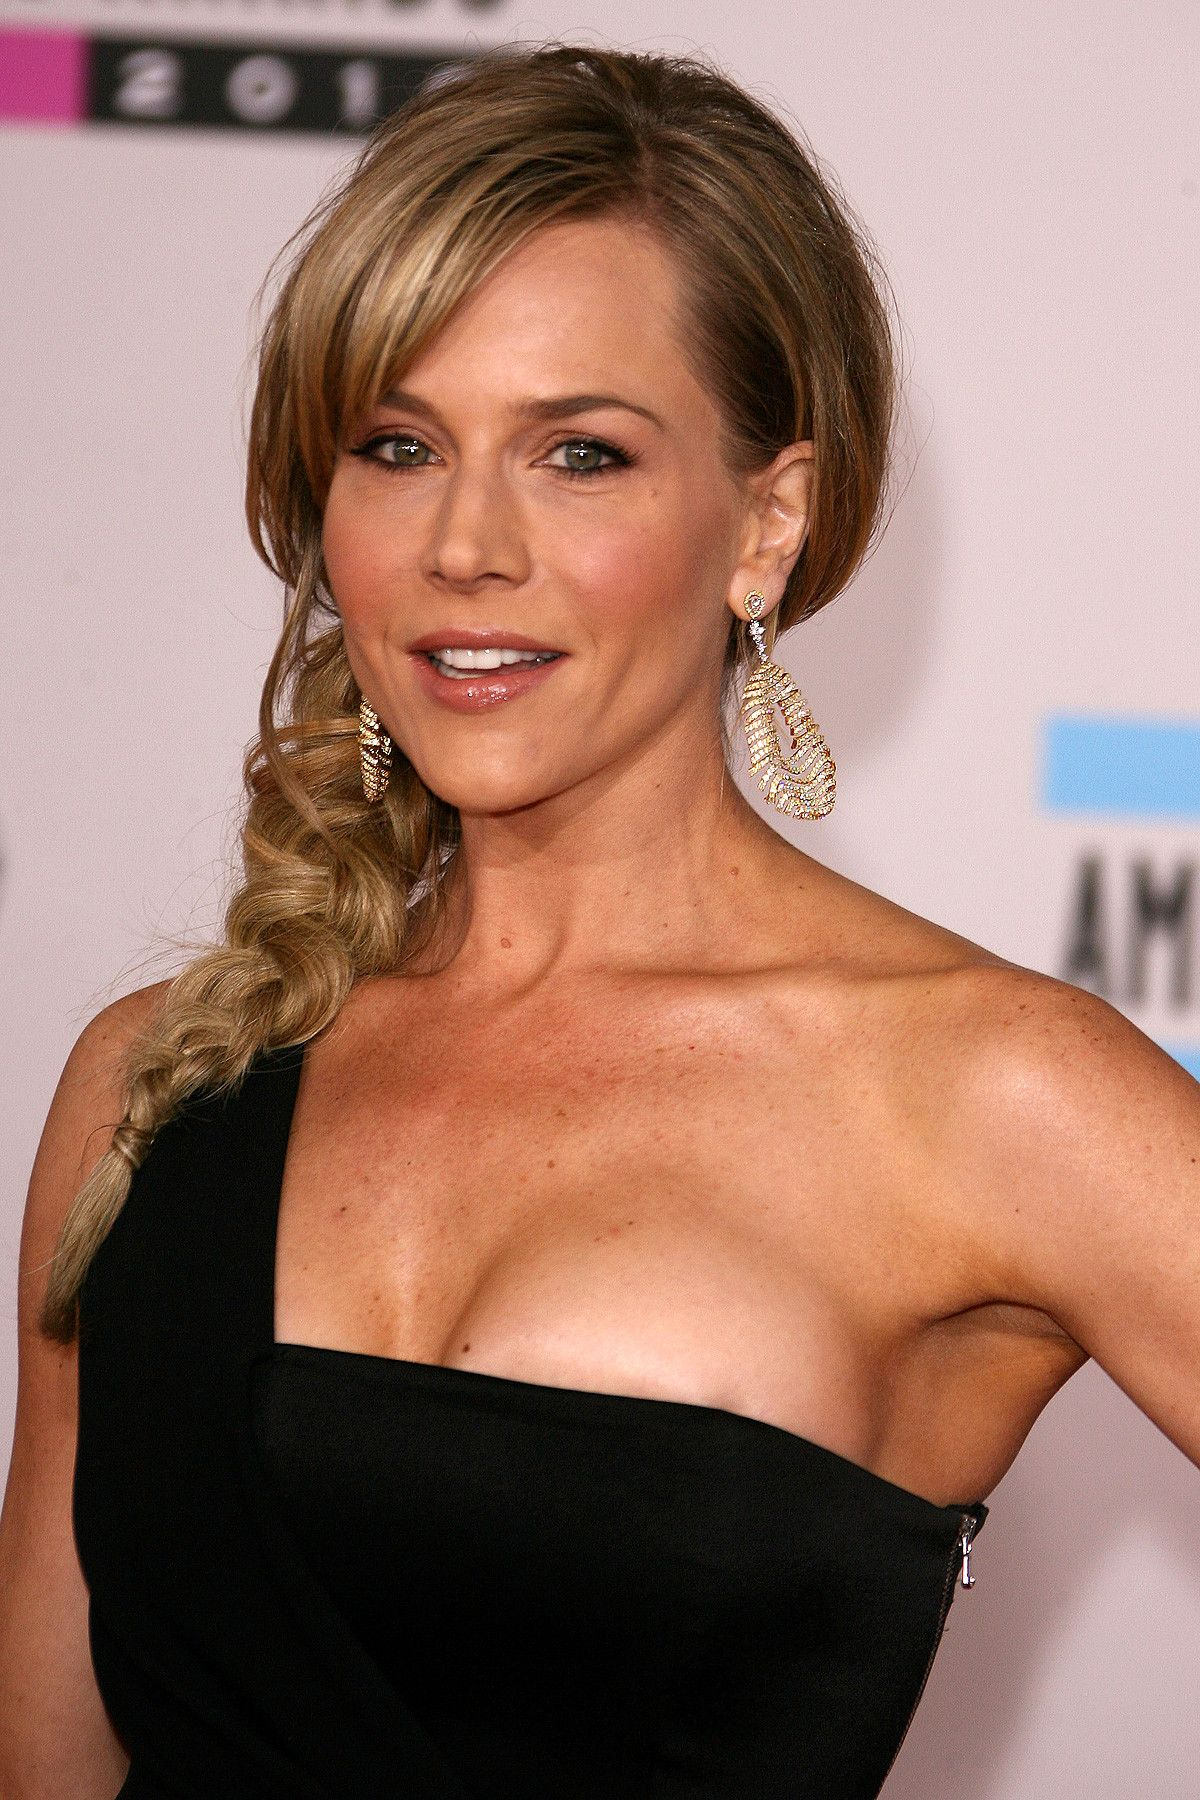 Leaked Julie Benz nude photos 2019